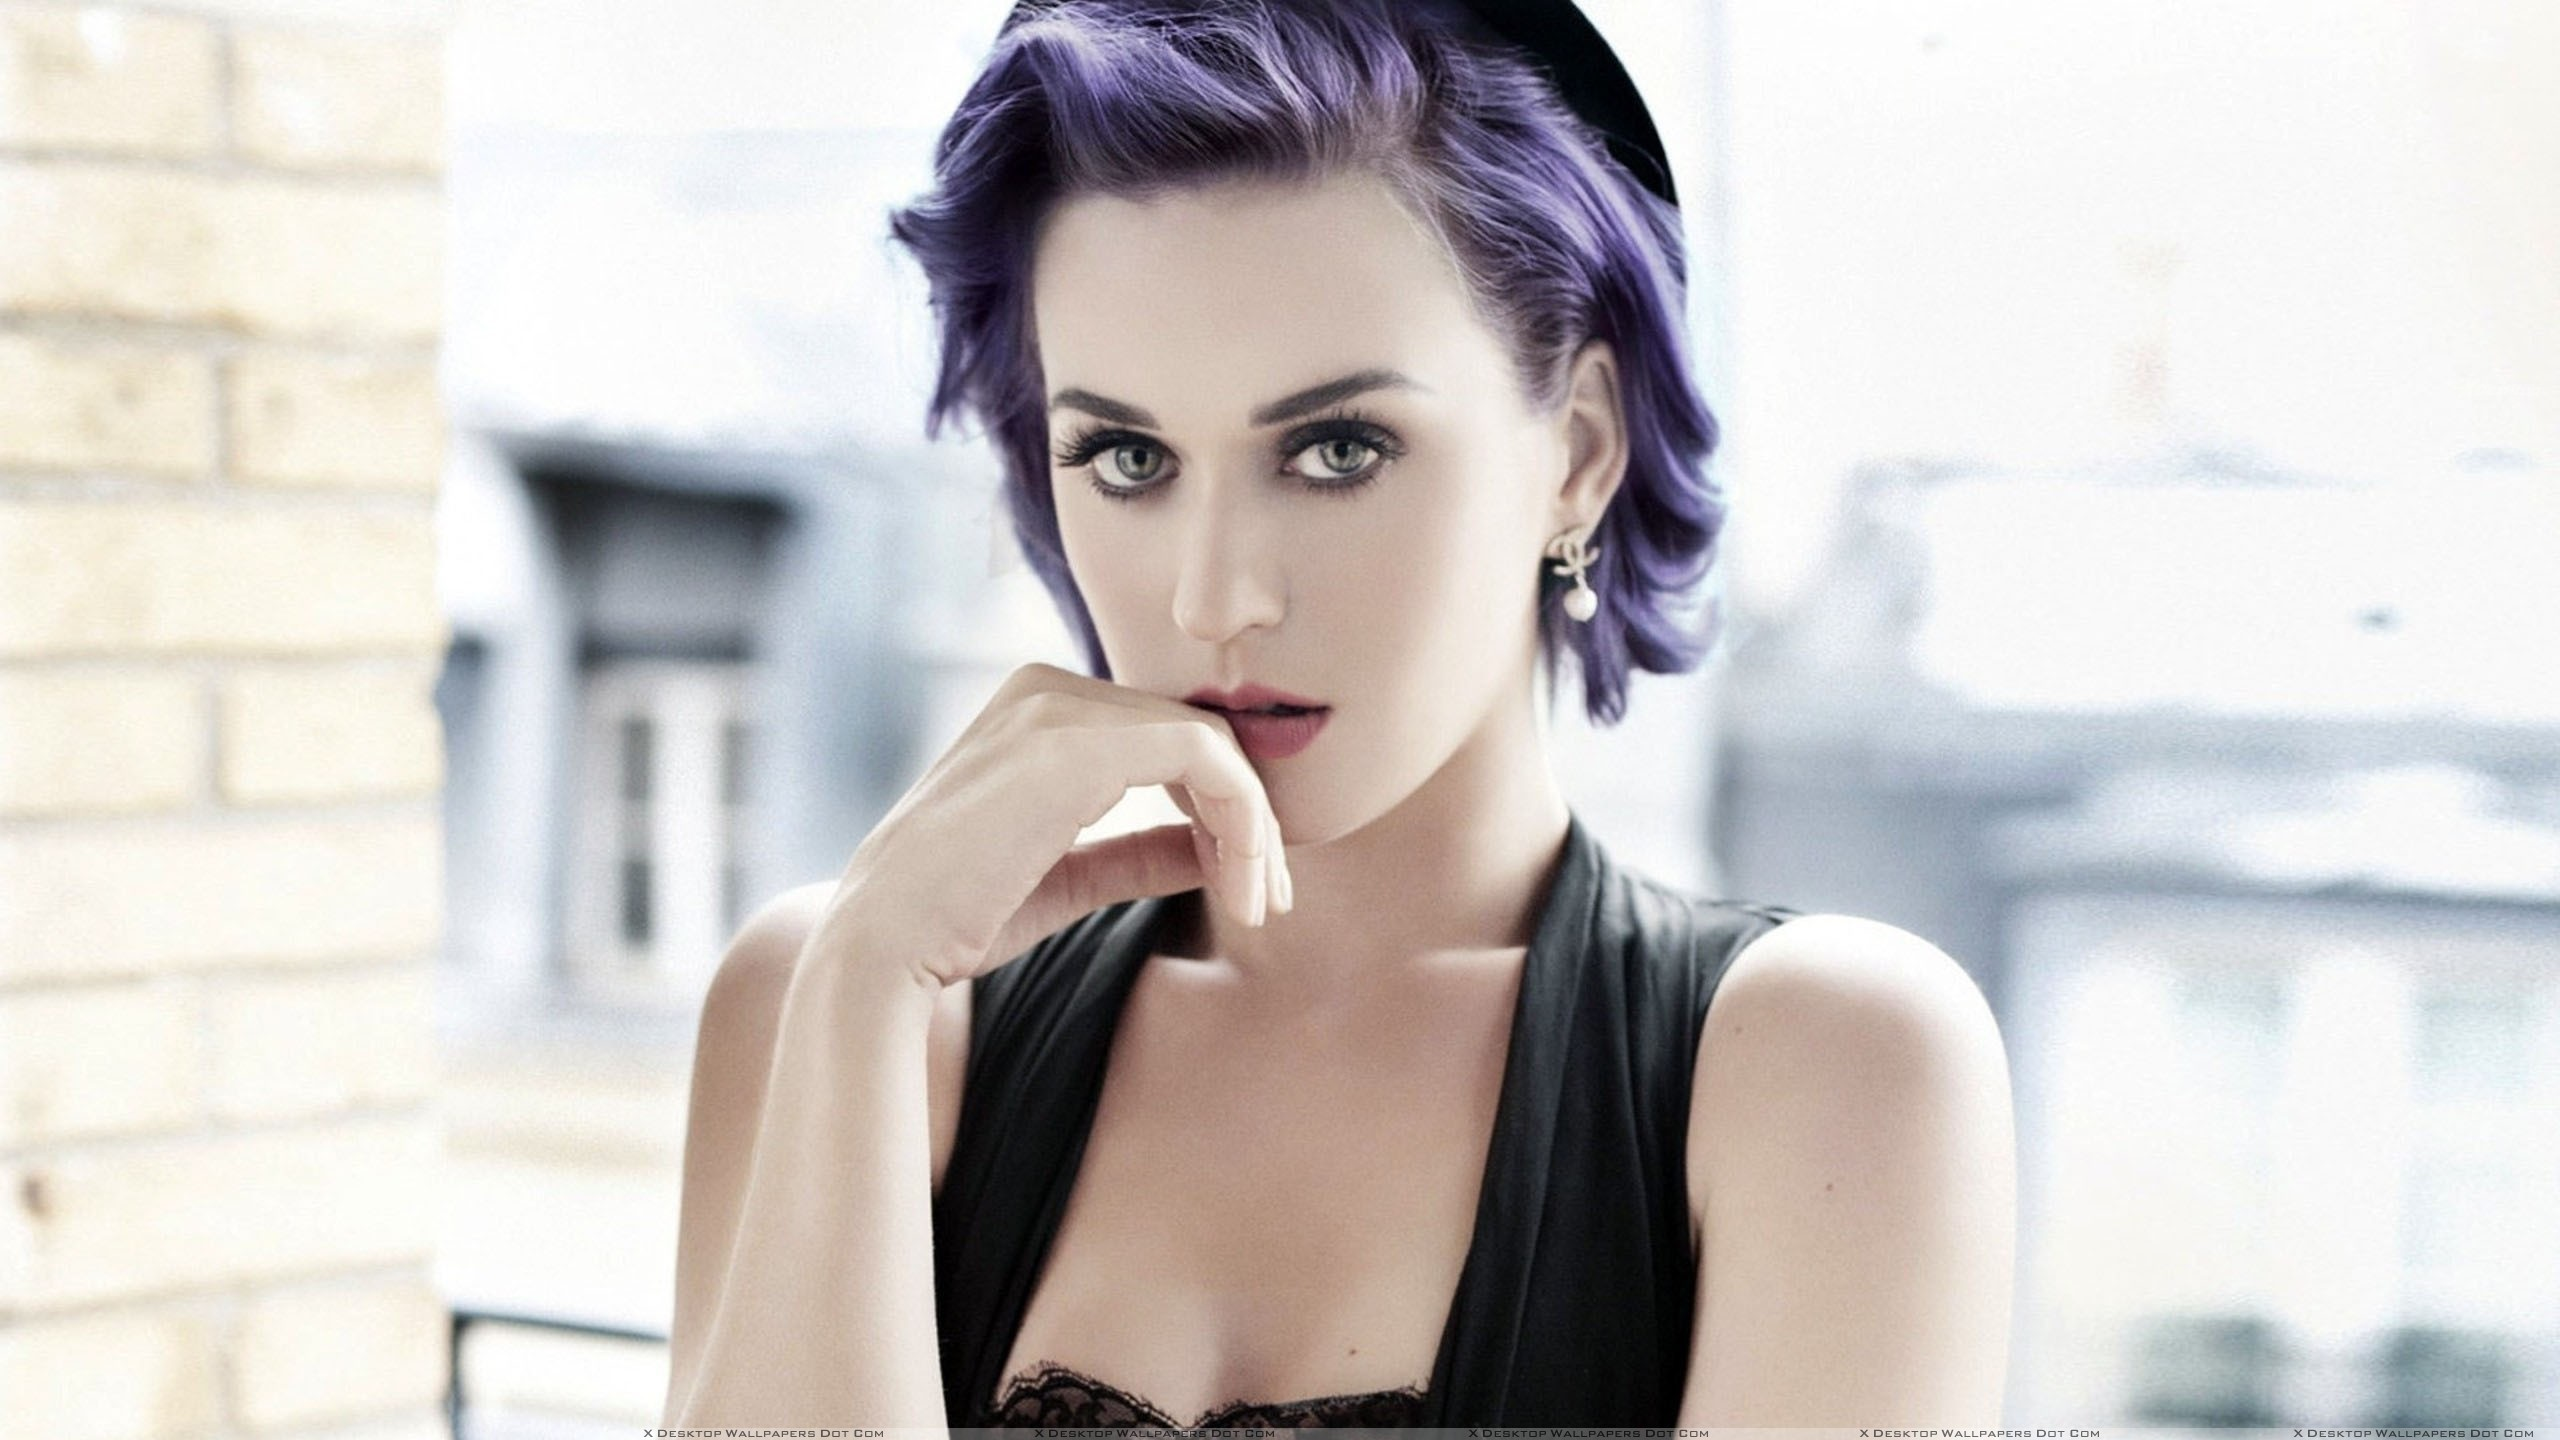 katy perry wallpapers, photos & images in hd